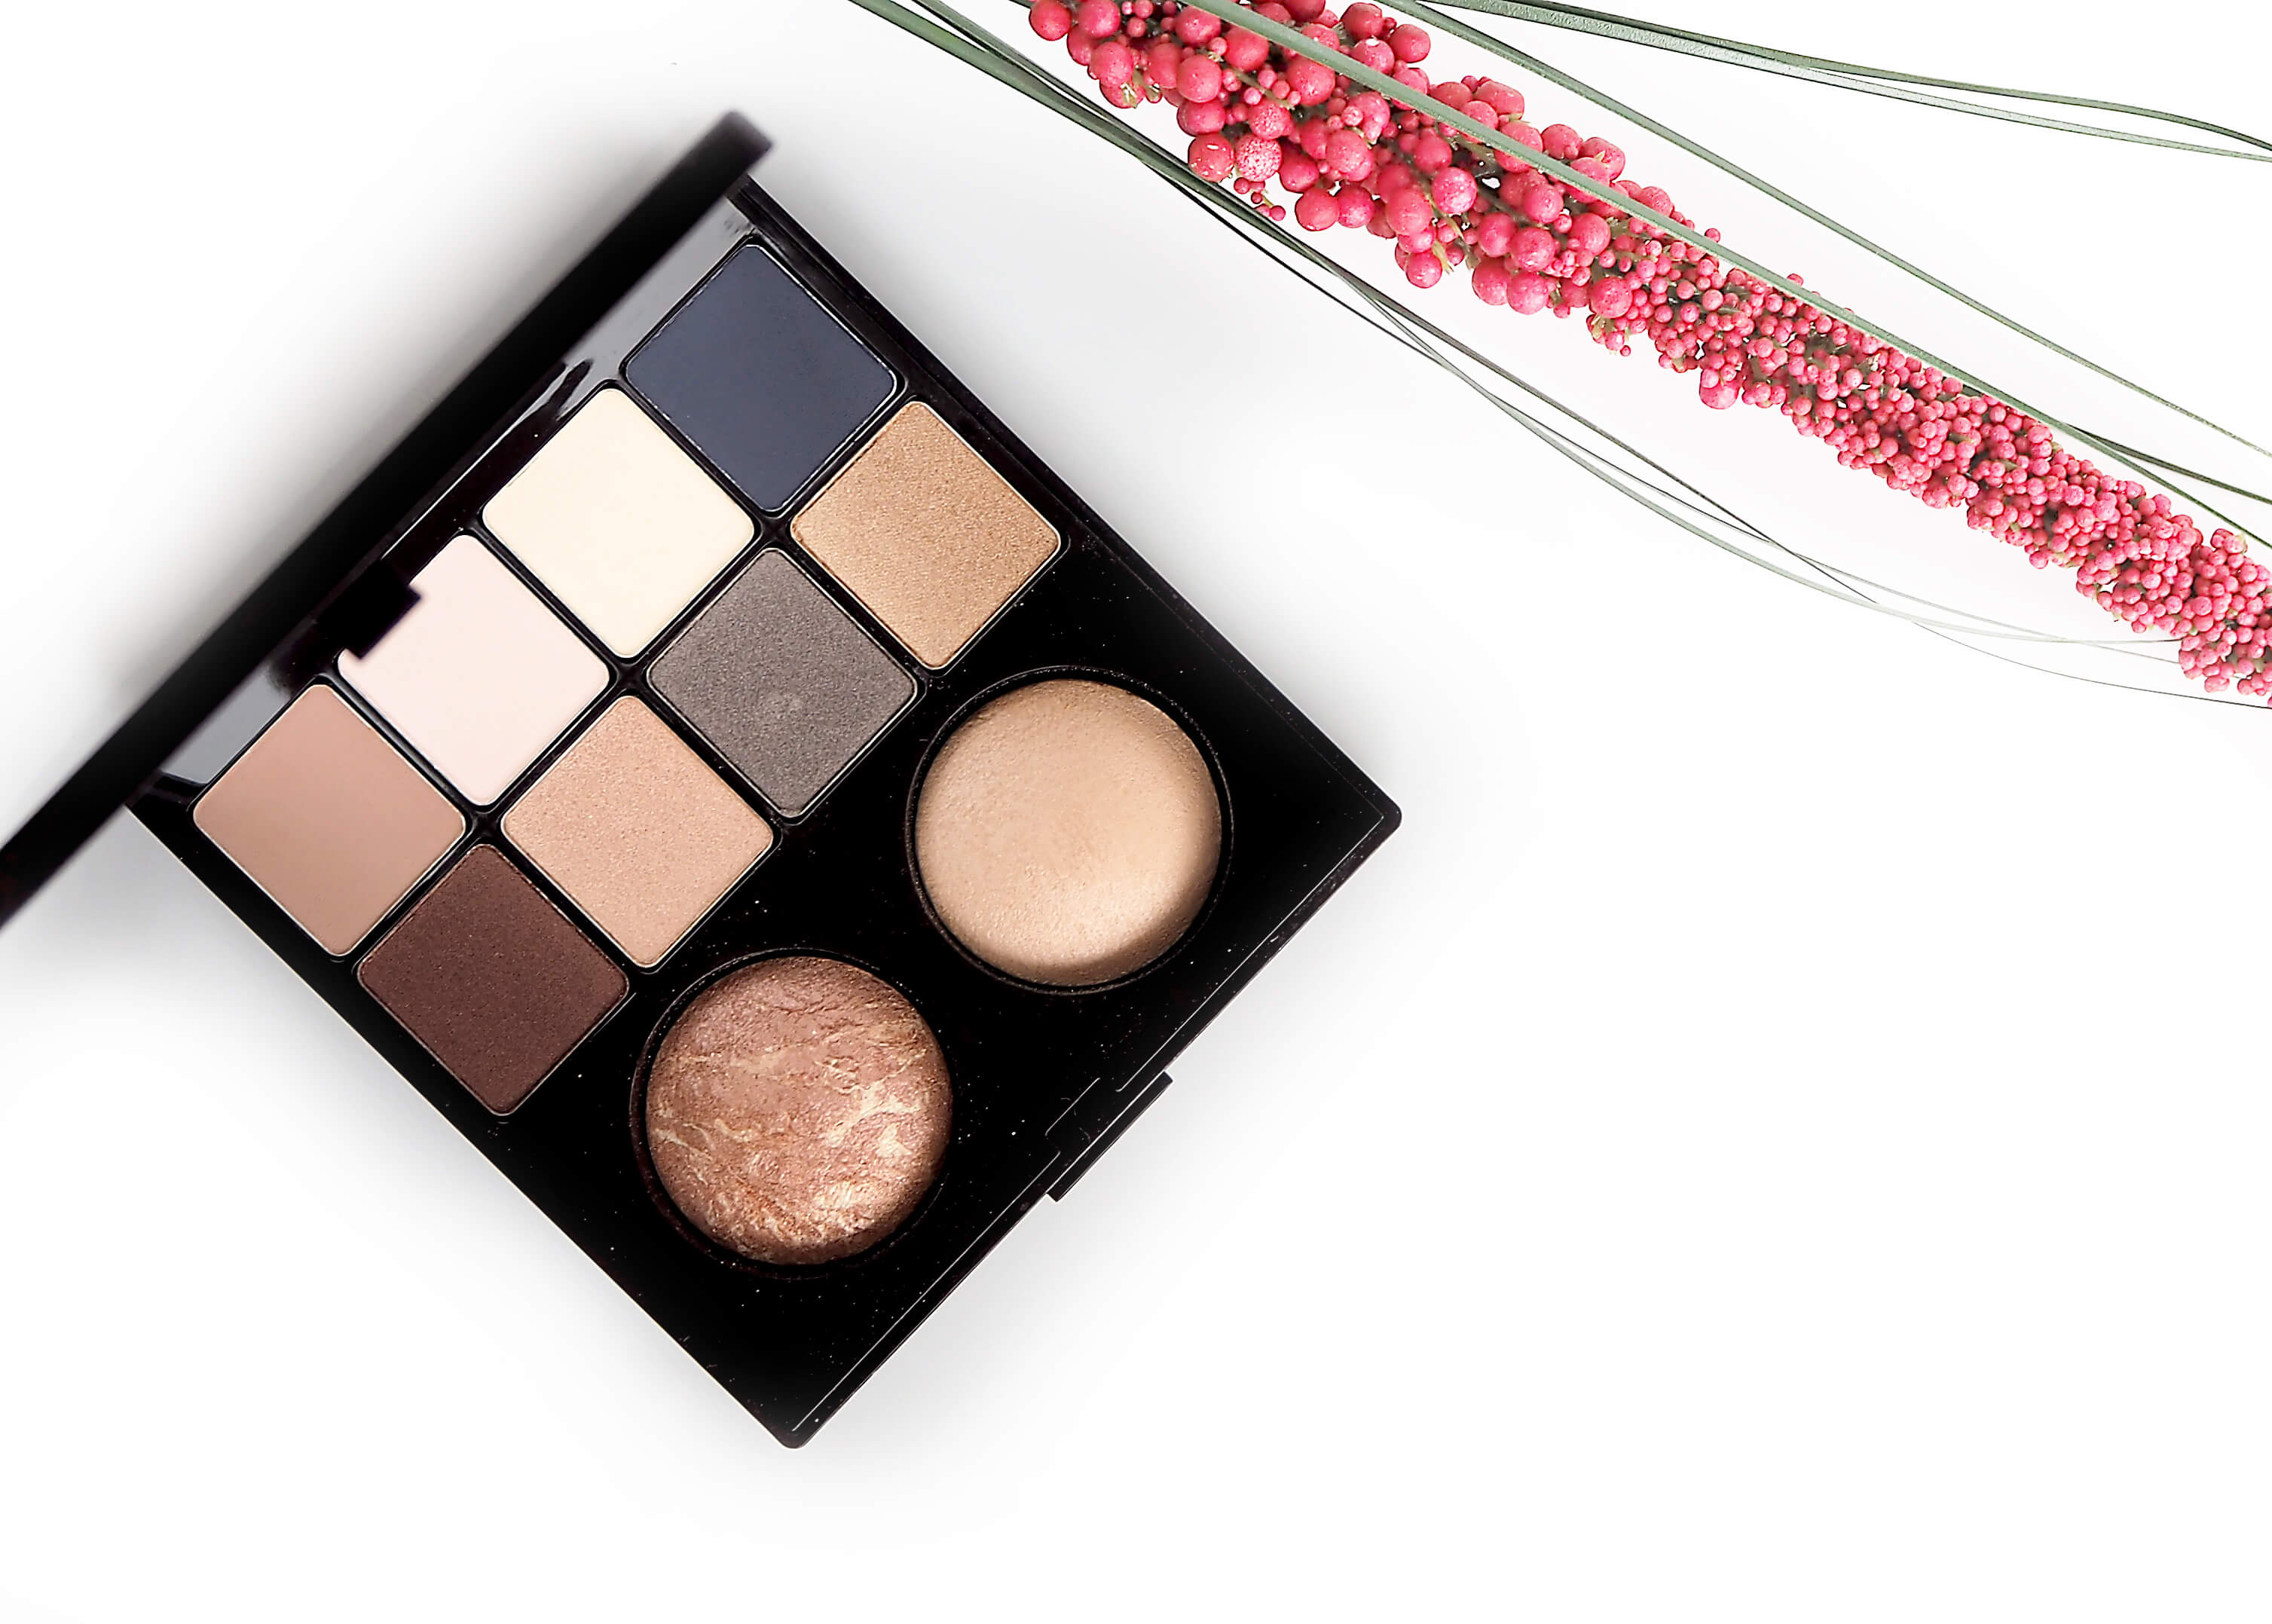 Laura Mercier Essential Art Eye & Cheek Palette